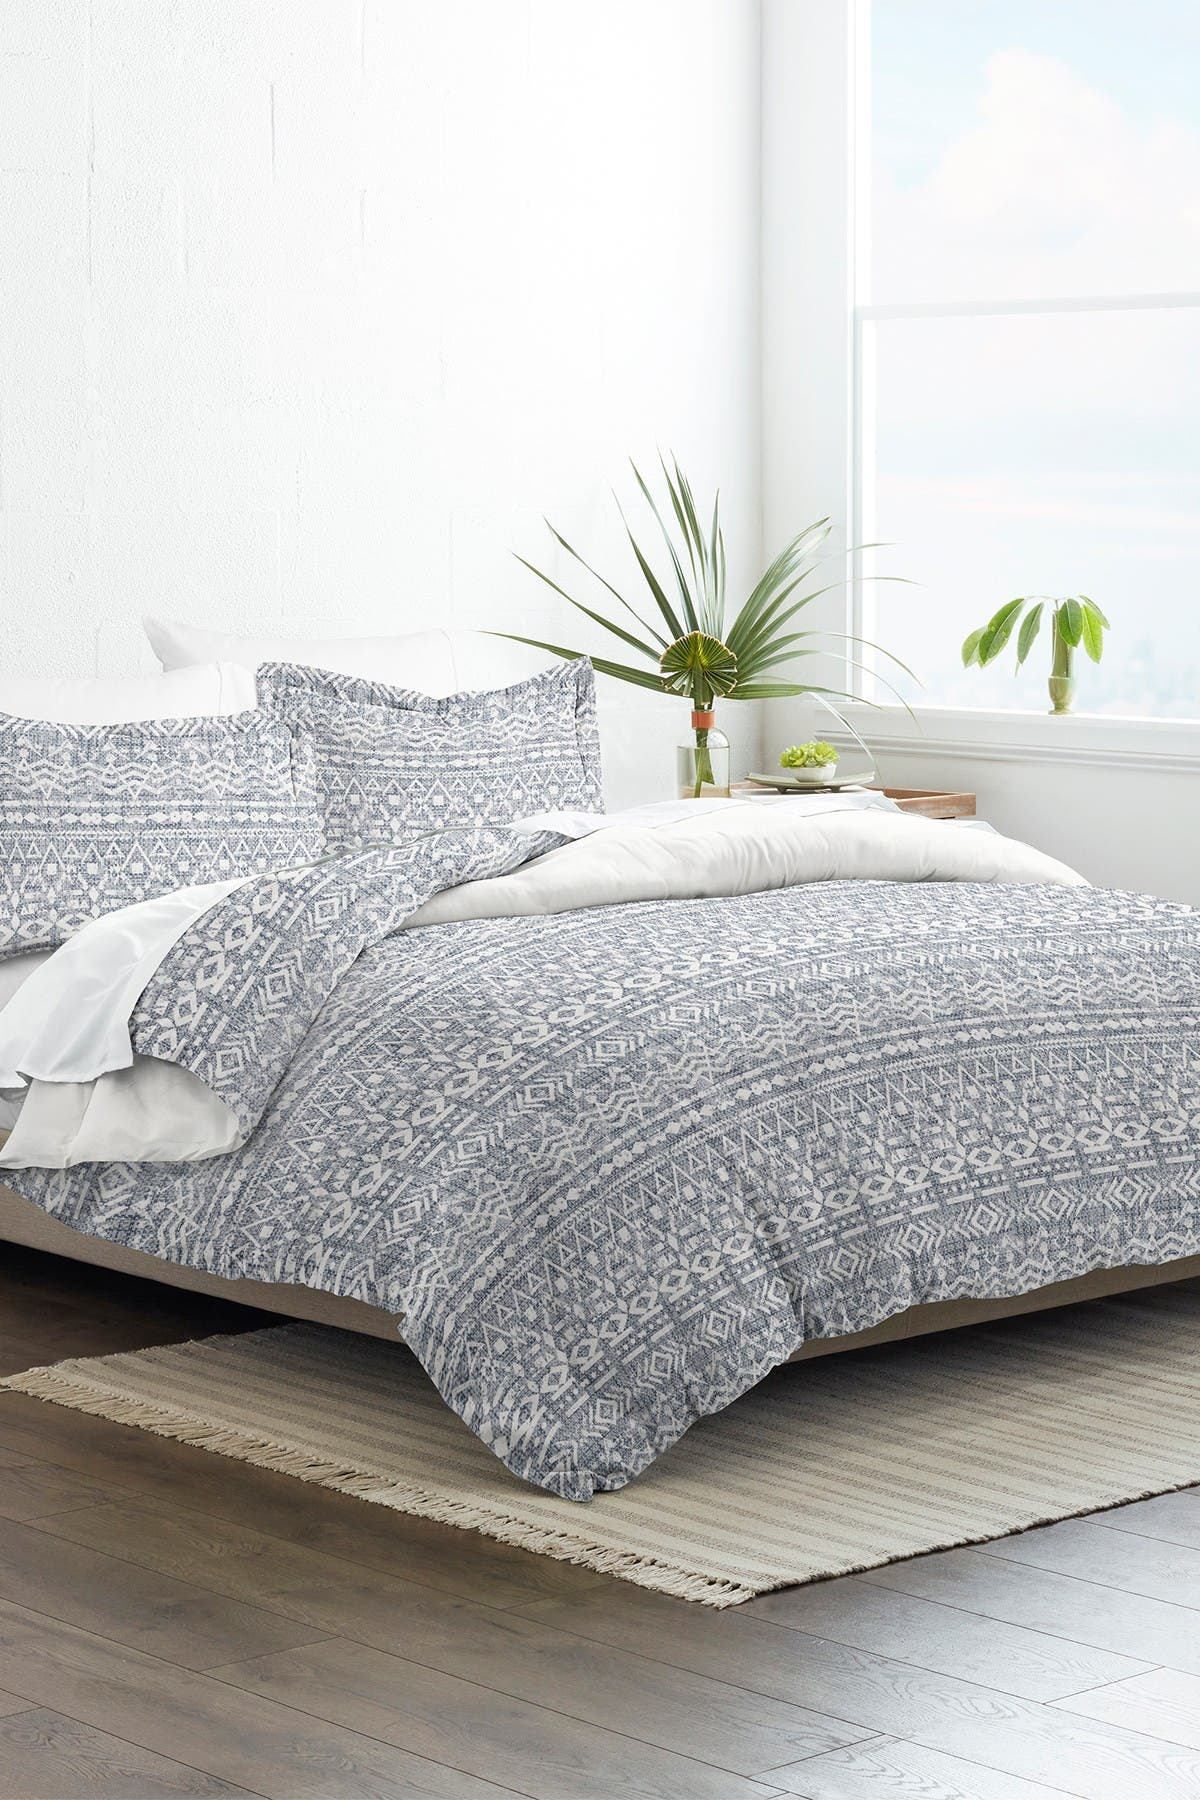 Image of IENJOY HOME Home Collection Premium Ultra Soft Modern Rustic Pattern 3-Piece King/California King Reversible Duvet Cover Set - Navy